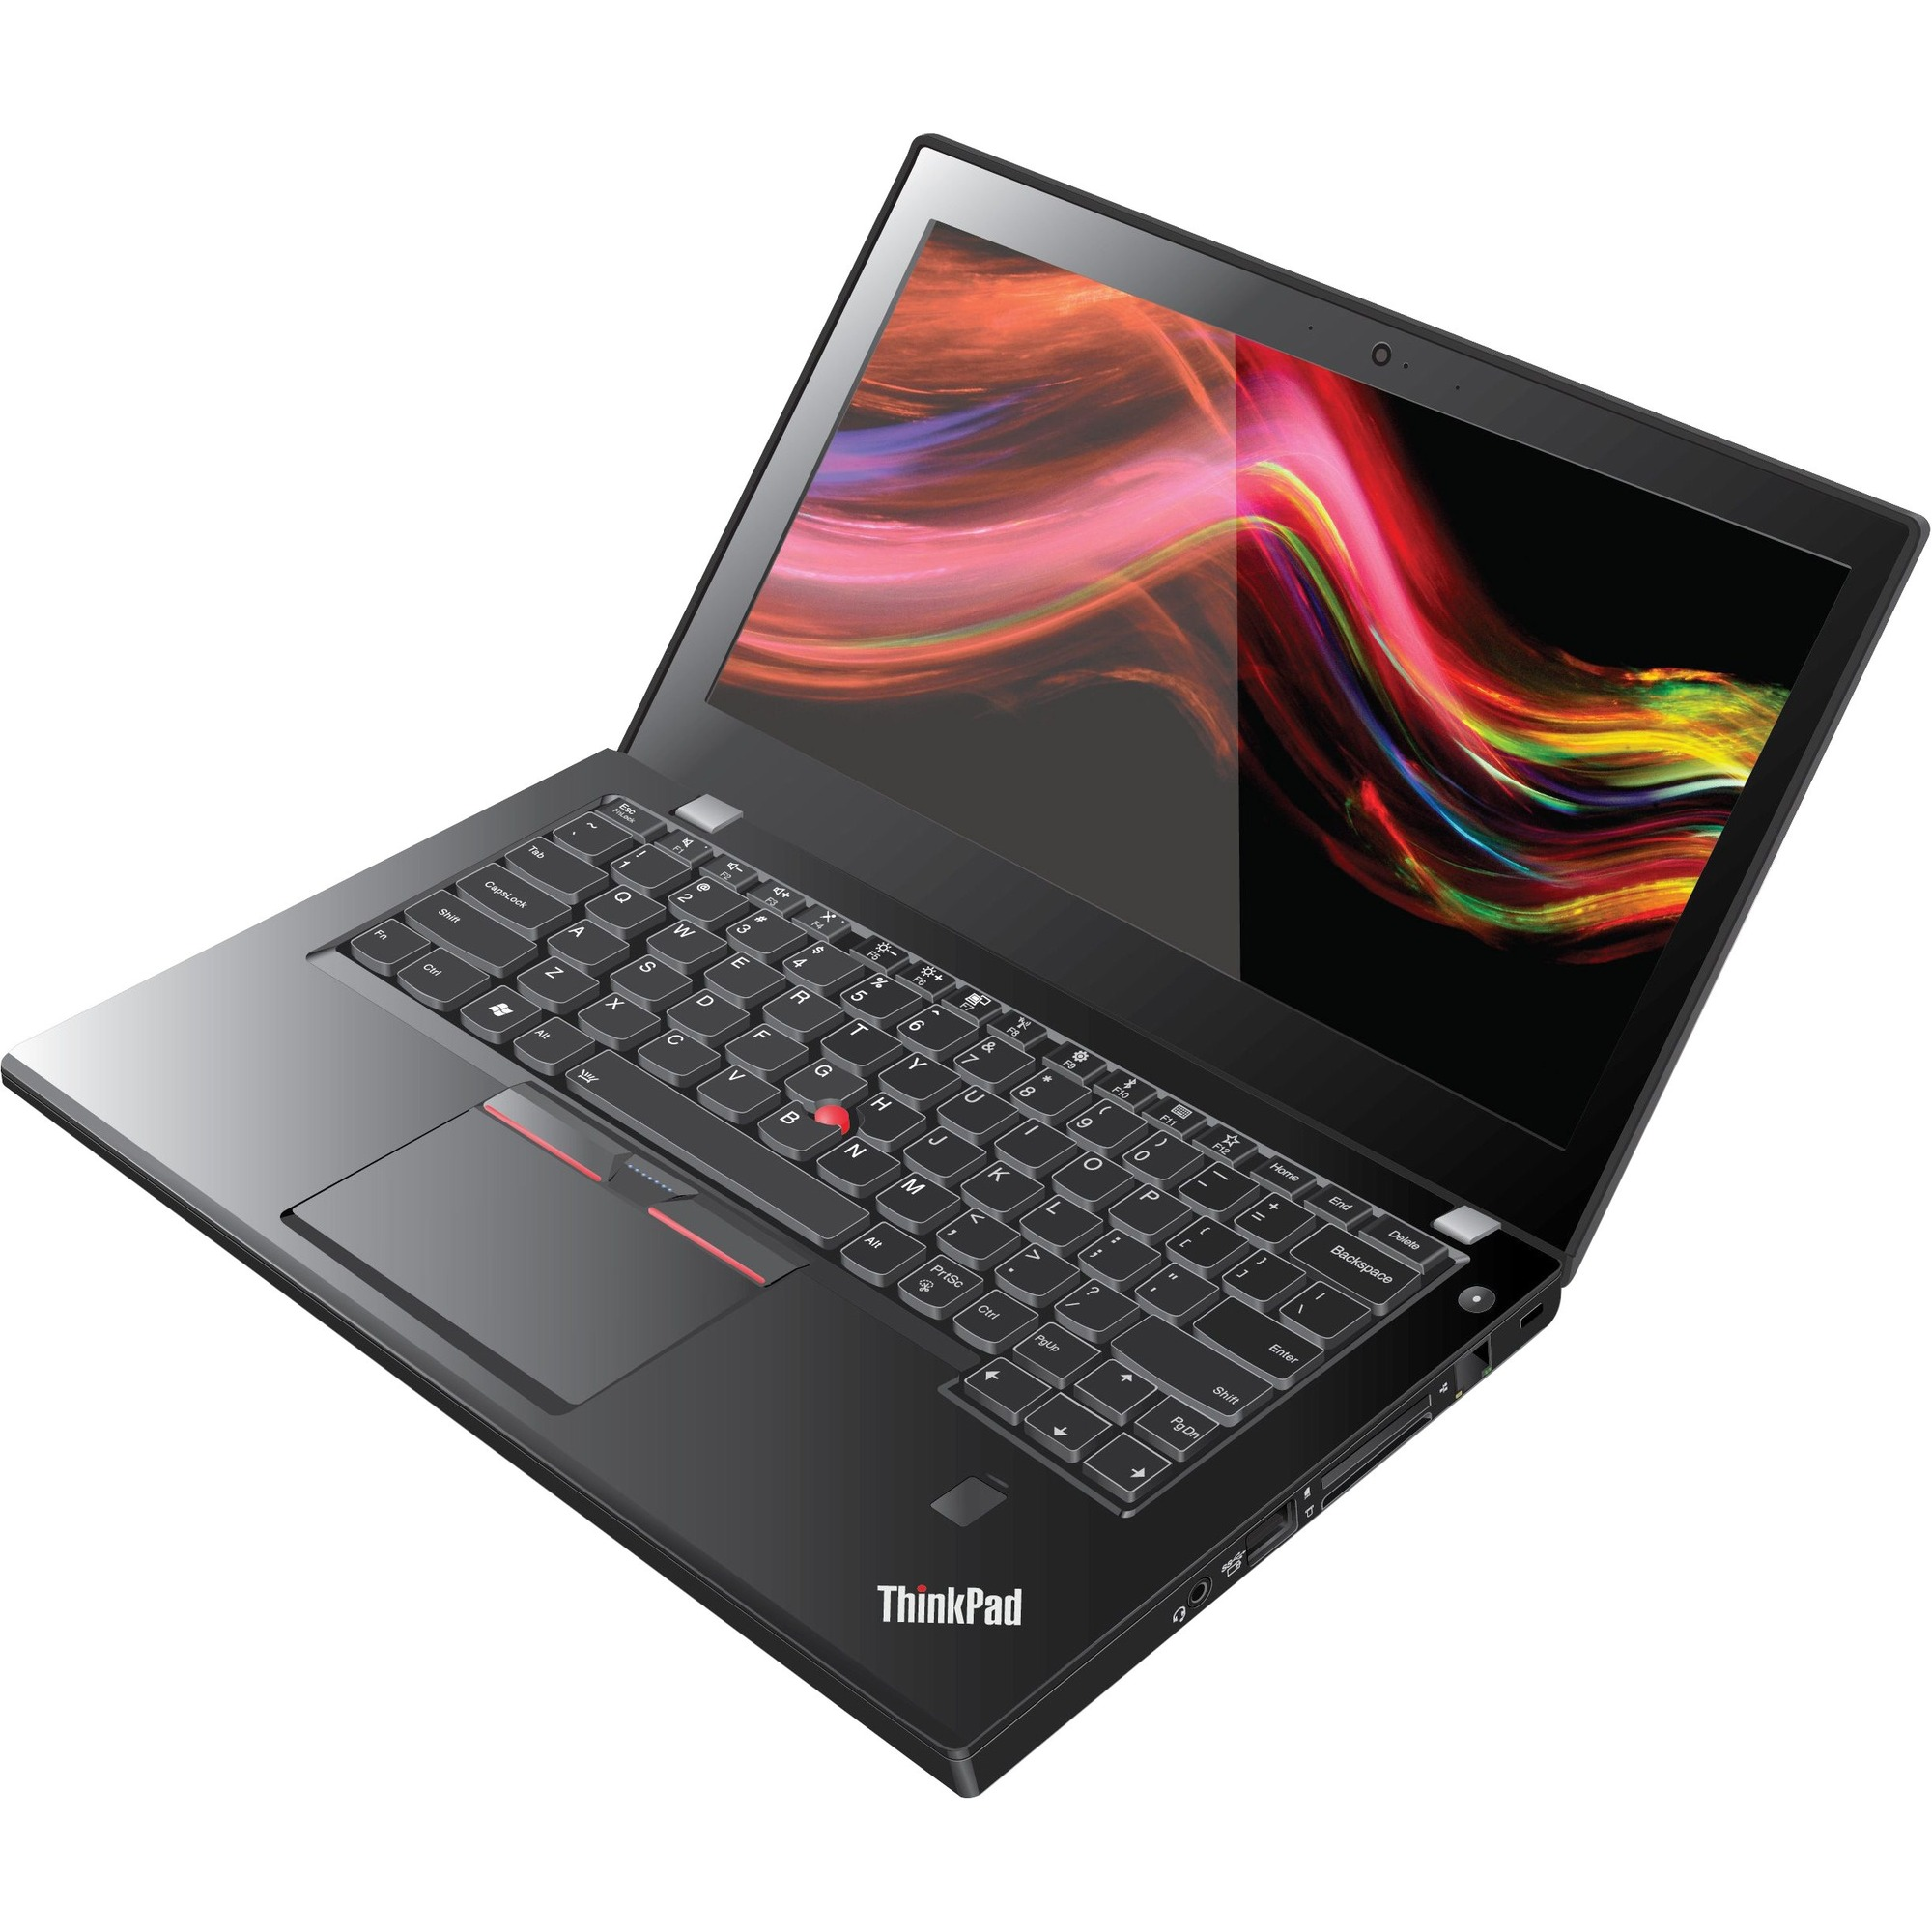 Lenovo ThinkPad X270 20HN002VUK 31.8 cm 12.5inch LCD Notebook - Intel Core i7 7th Gen